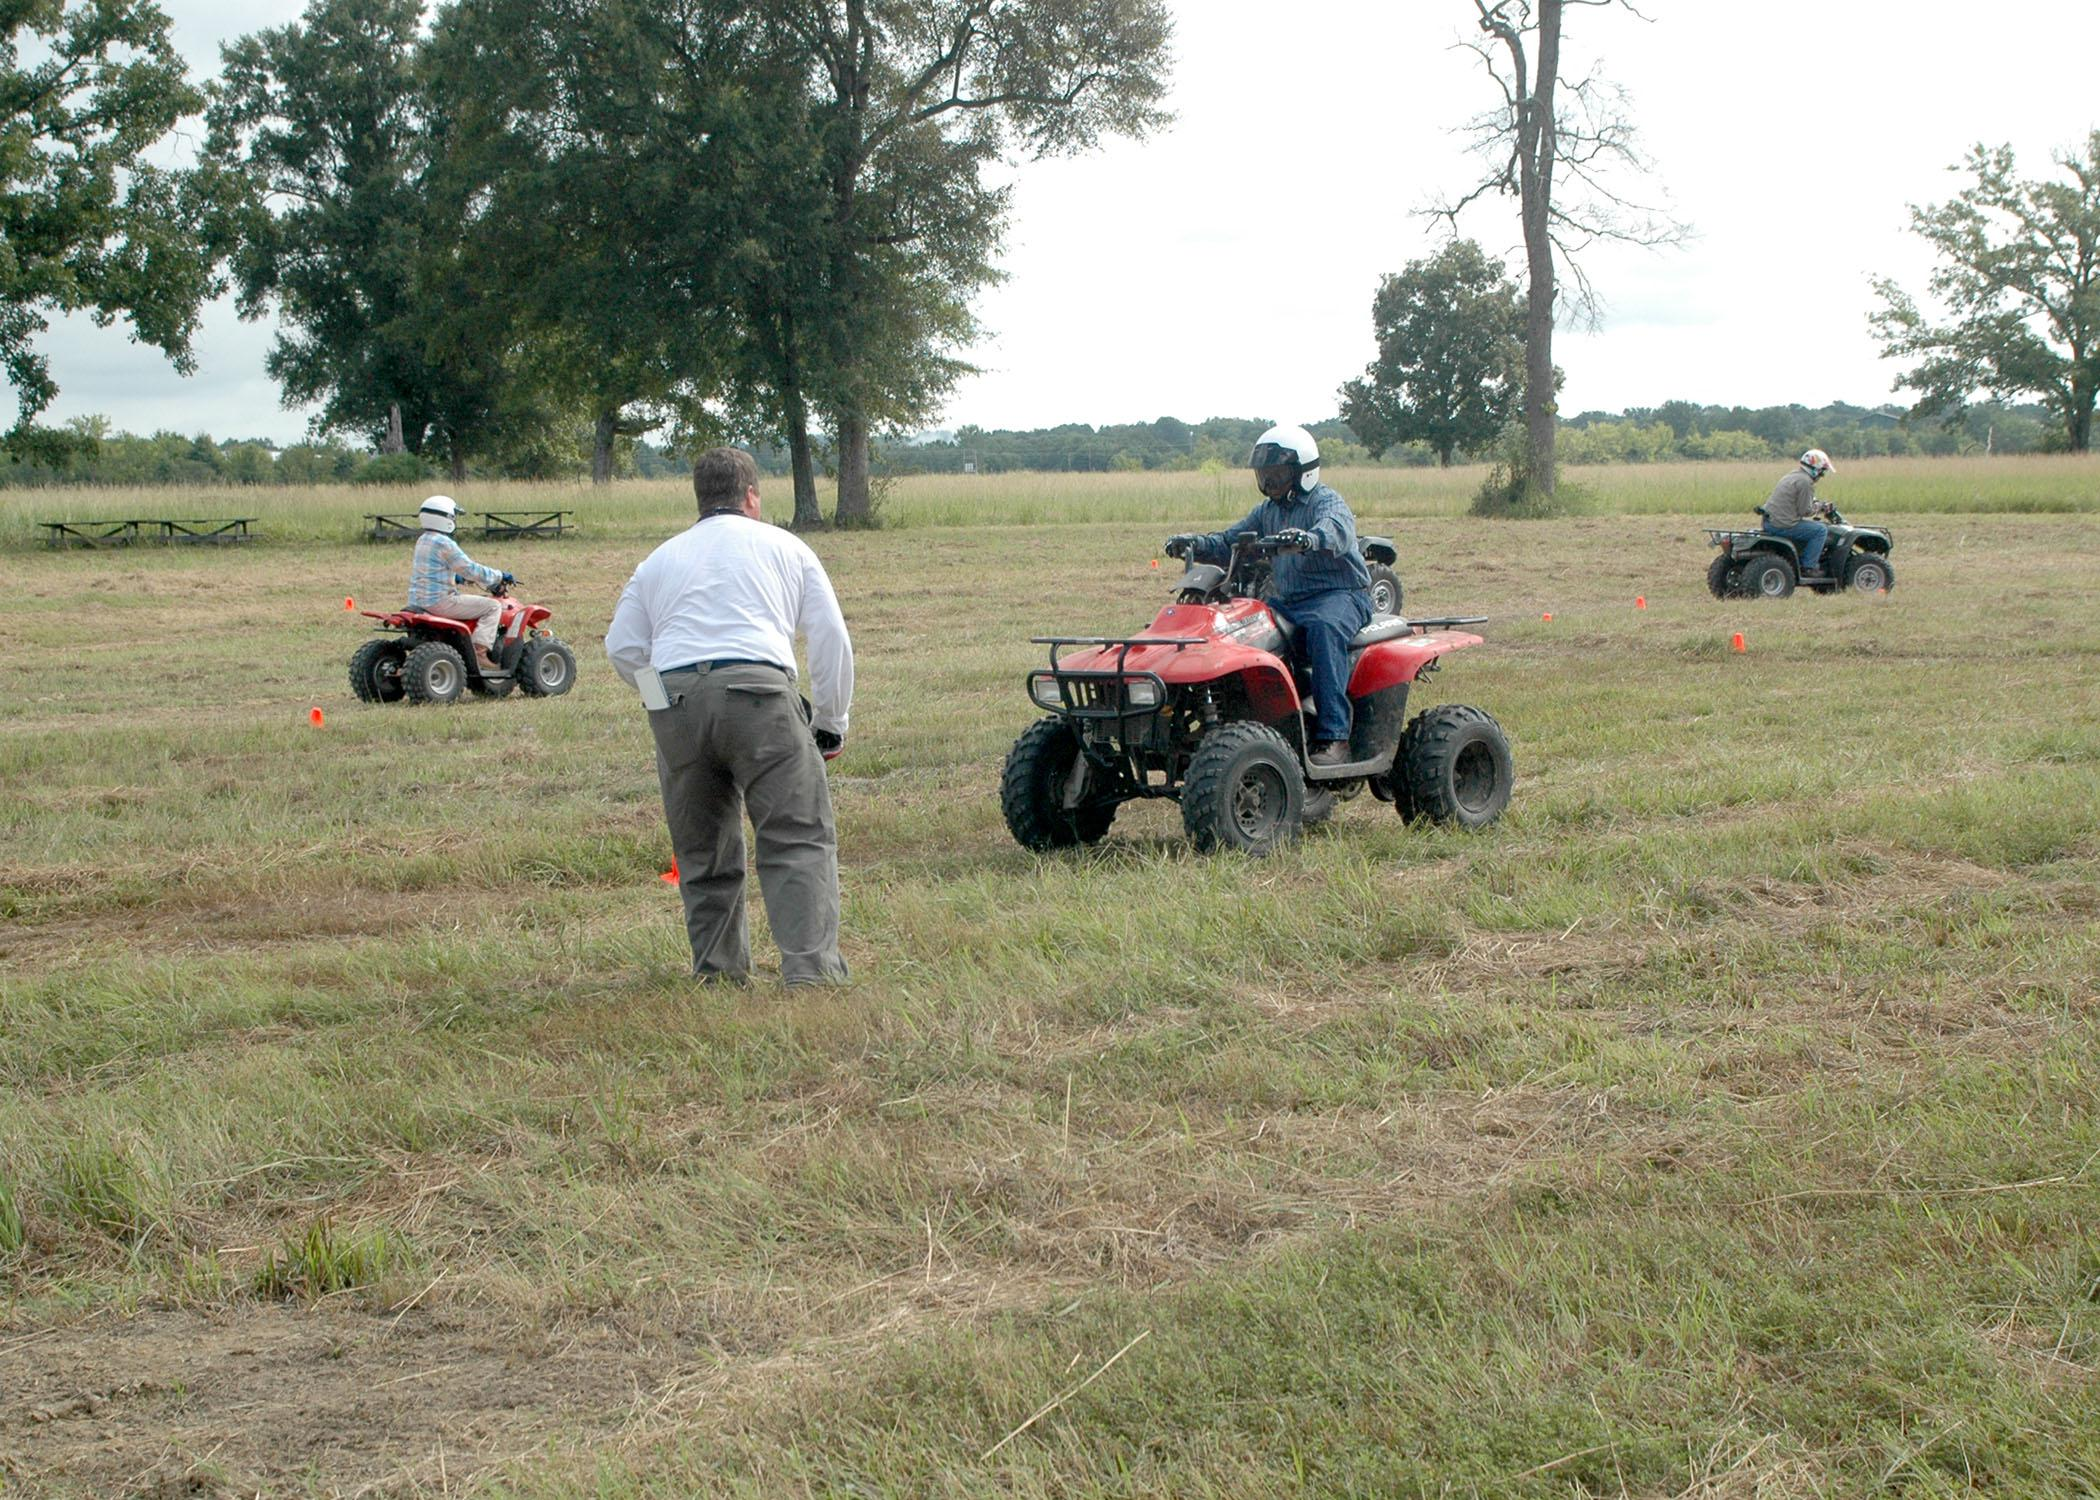 Attending safety courses about all-terrain vehicles can provide drivers with experience in handling all types of situations. (File photo/MSU Ag Communications)